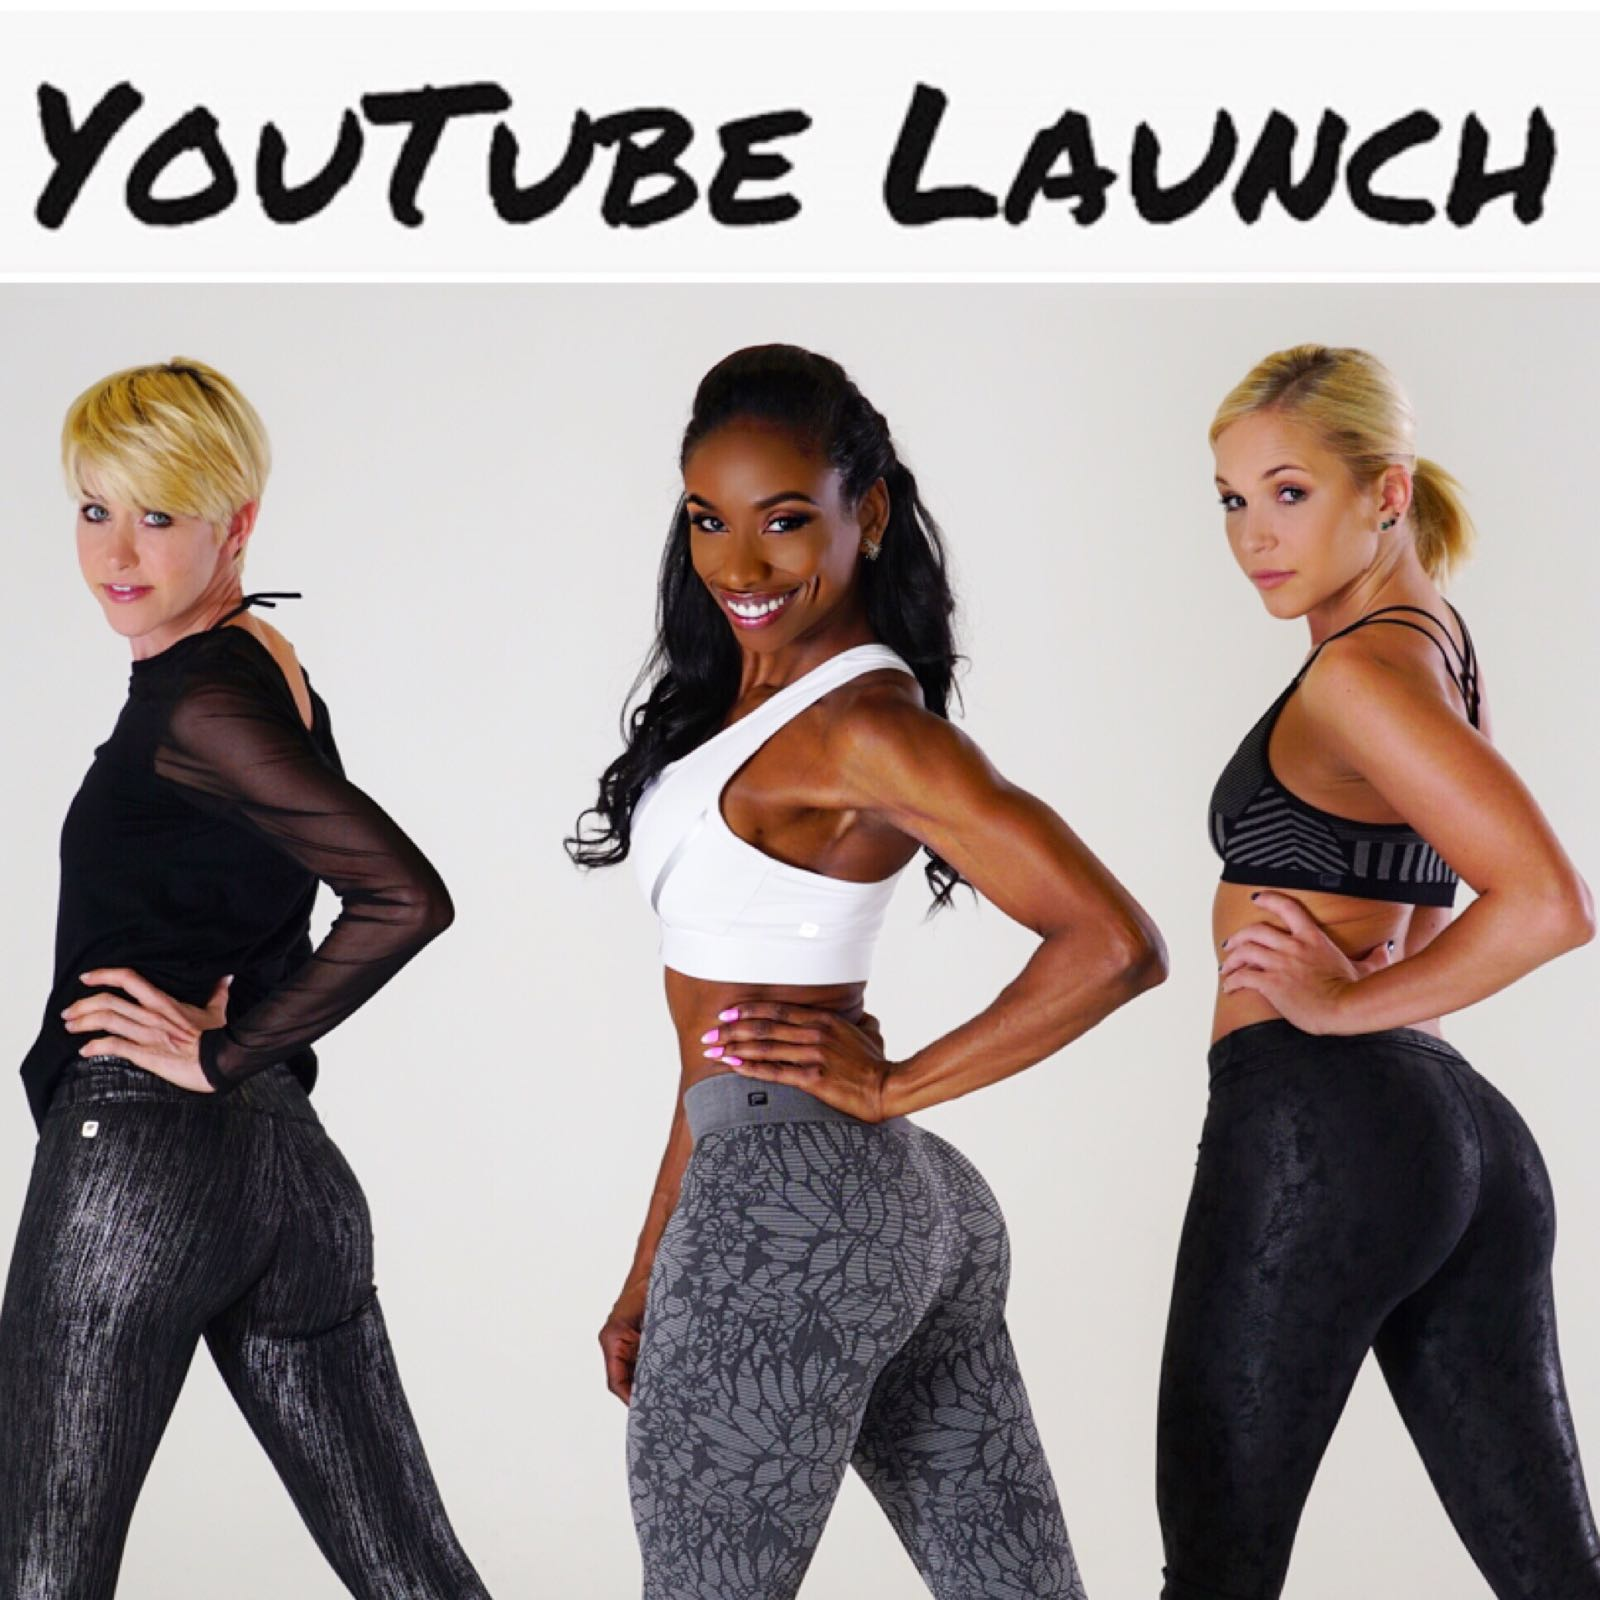 Youtube Launch